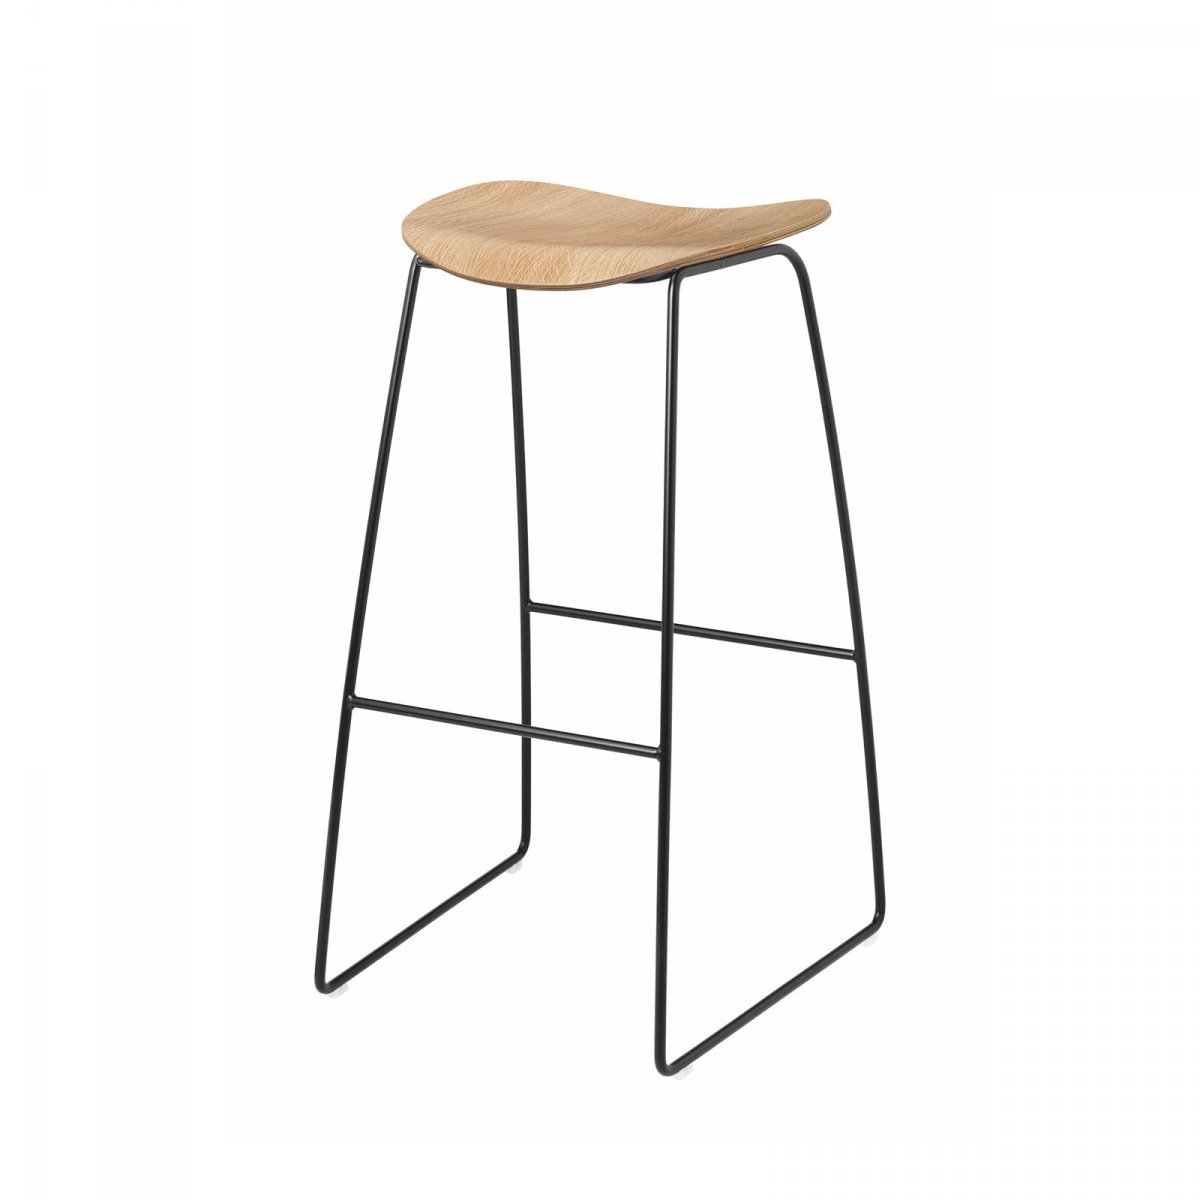 Gubi 2D Stool Sled Base, oak + black.